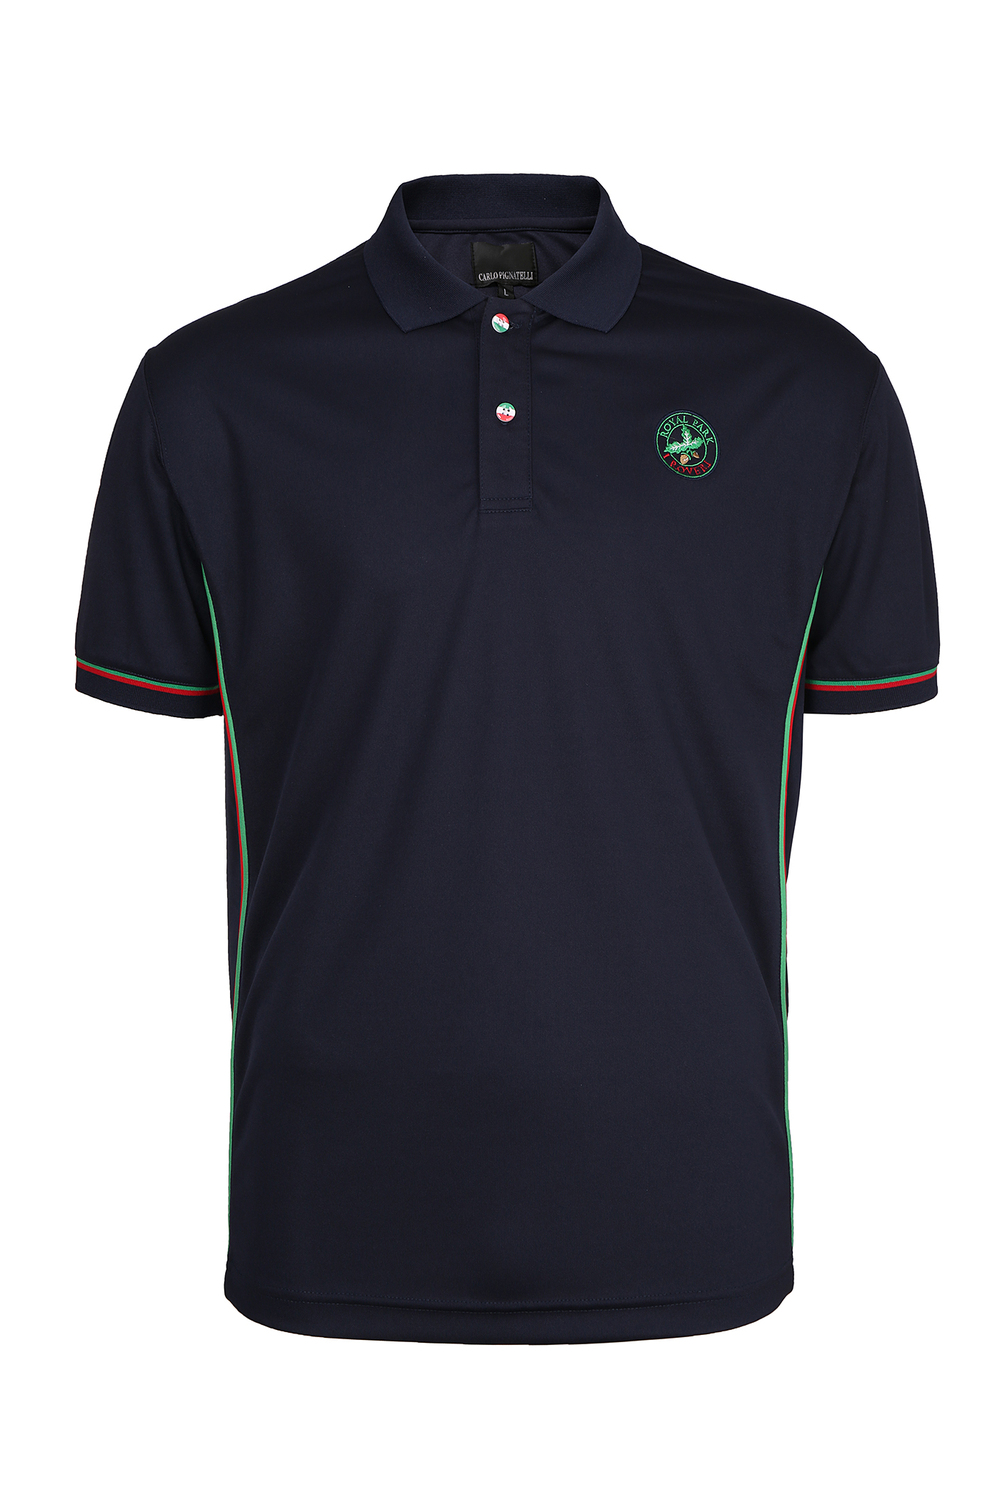 Customized wholesale polo shirt embroidery shanghai top for Cheap custom embroidered polo shirts